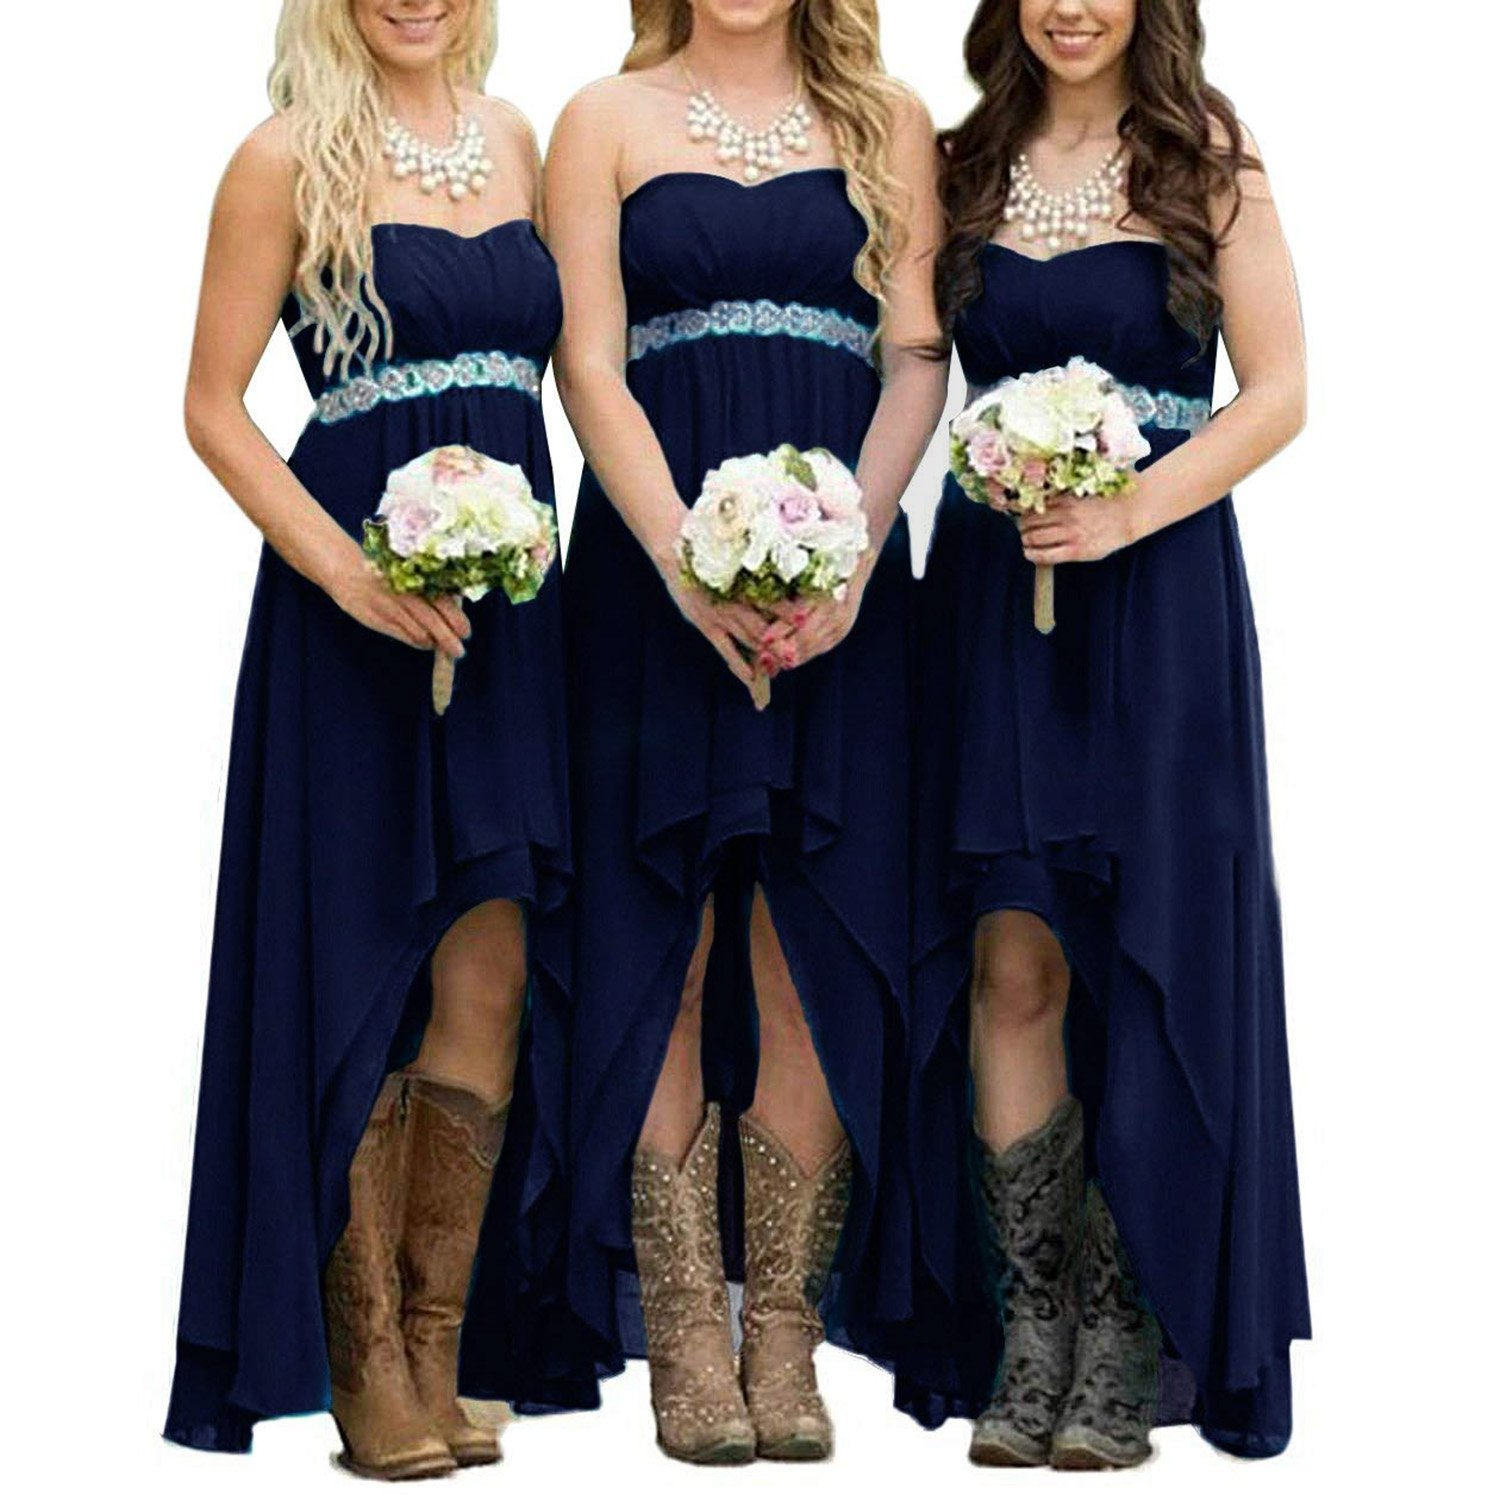 EUMI Chiffon Bridesmaid Dresses High